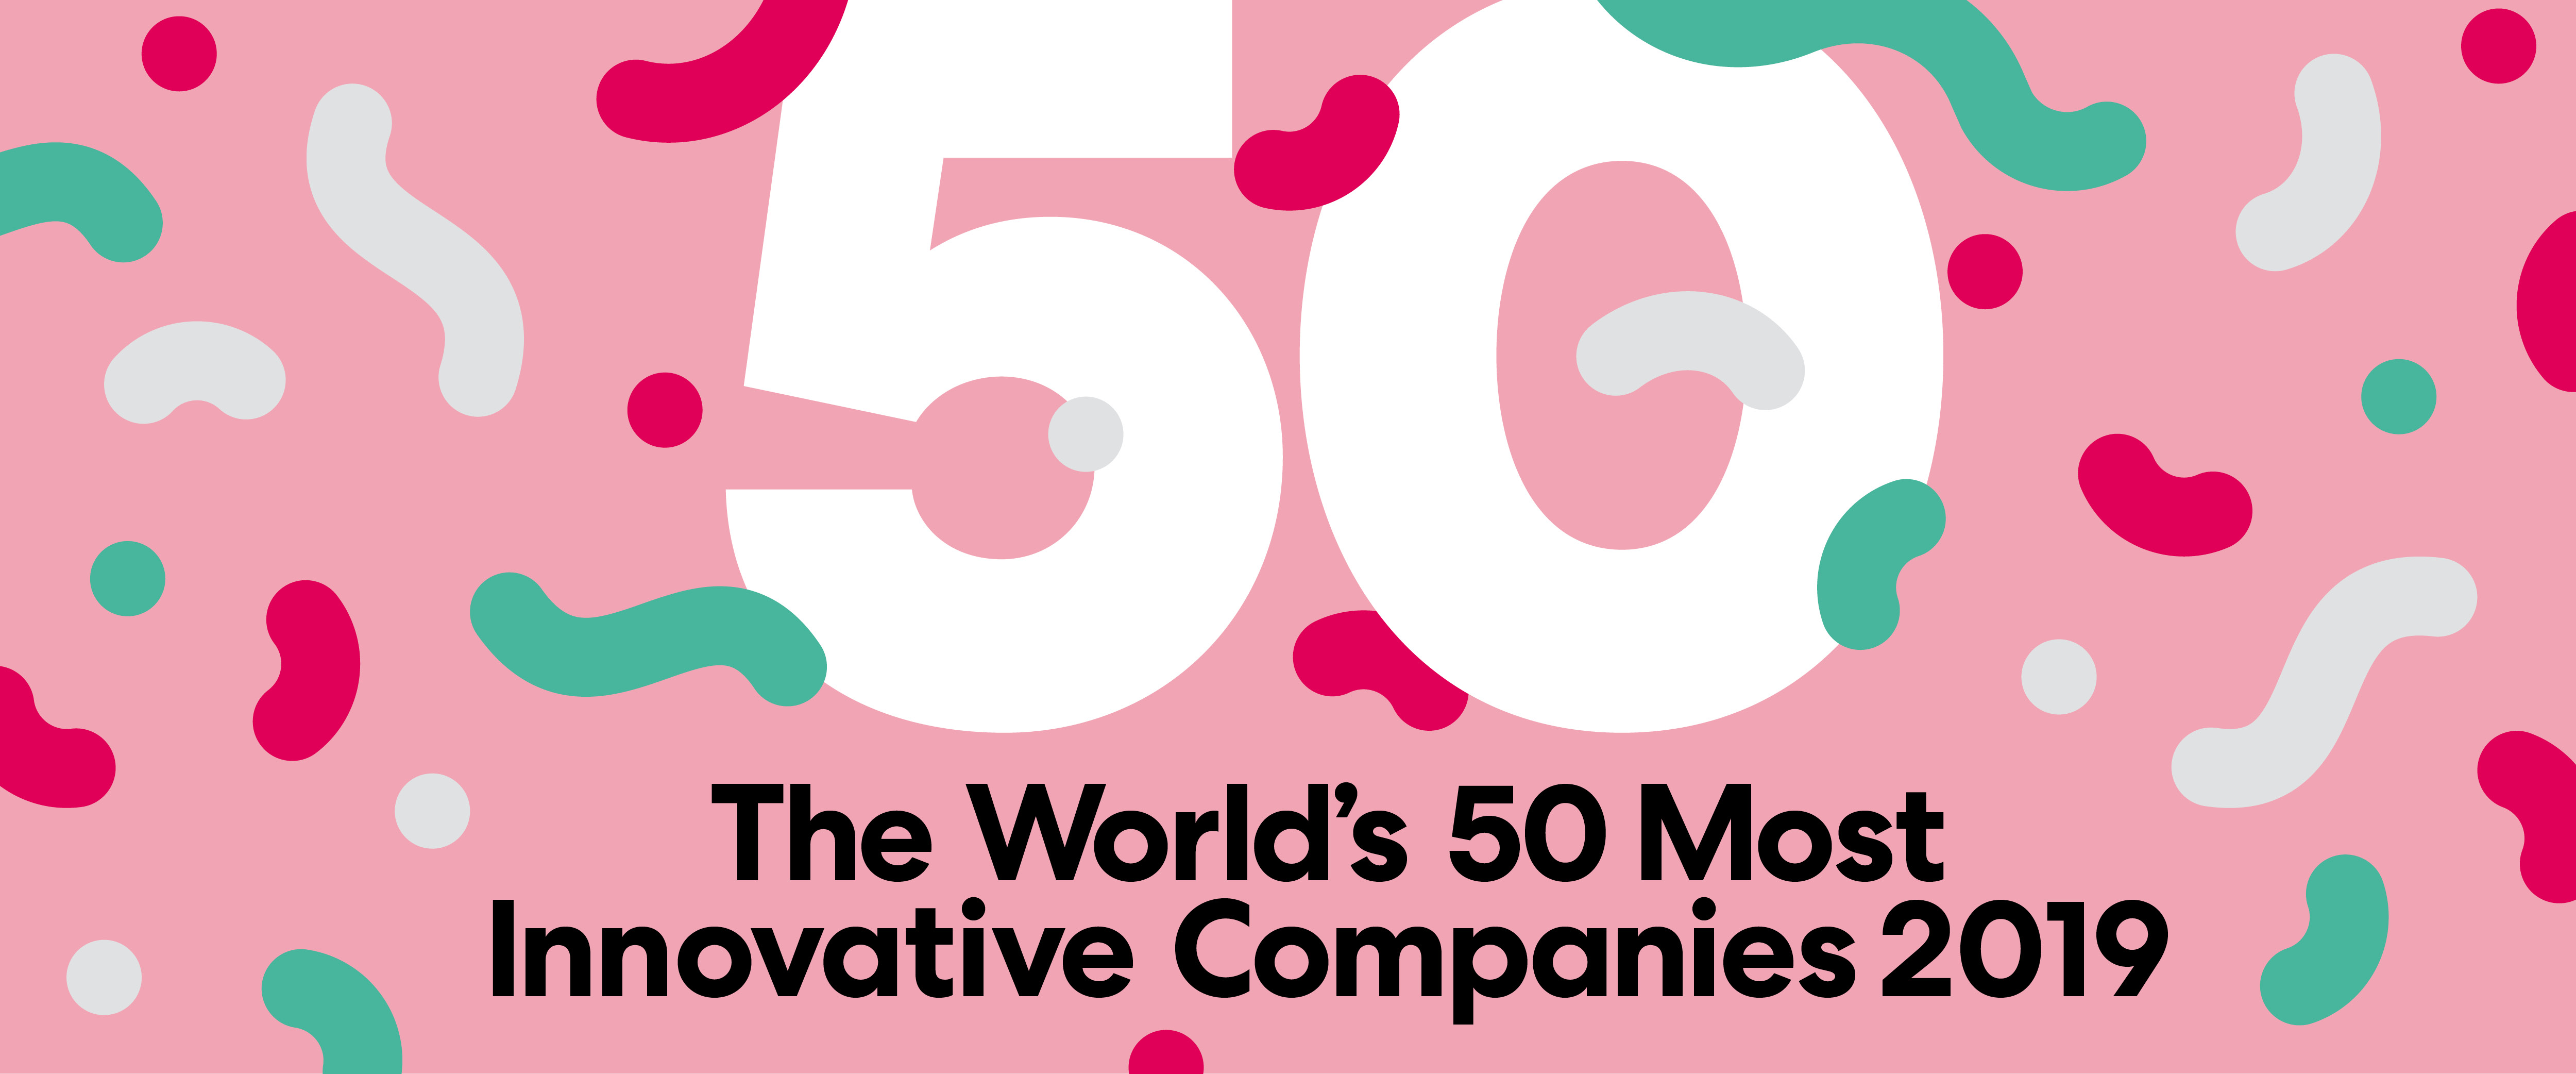 AMRA Selected as One of the Most Innovative Companies by Fast Company